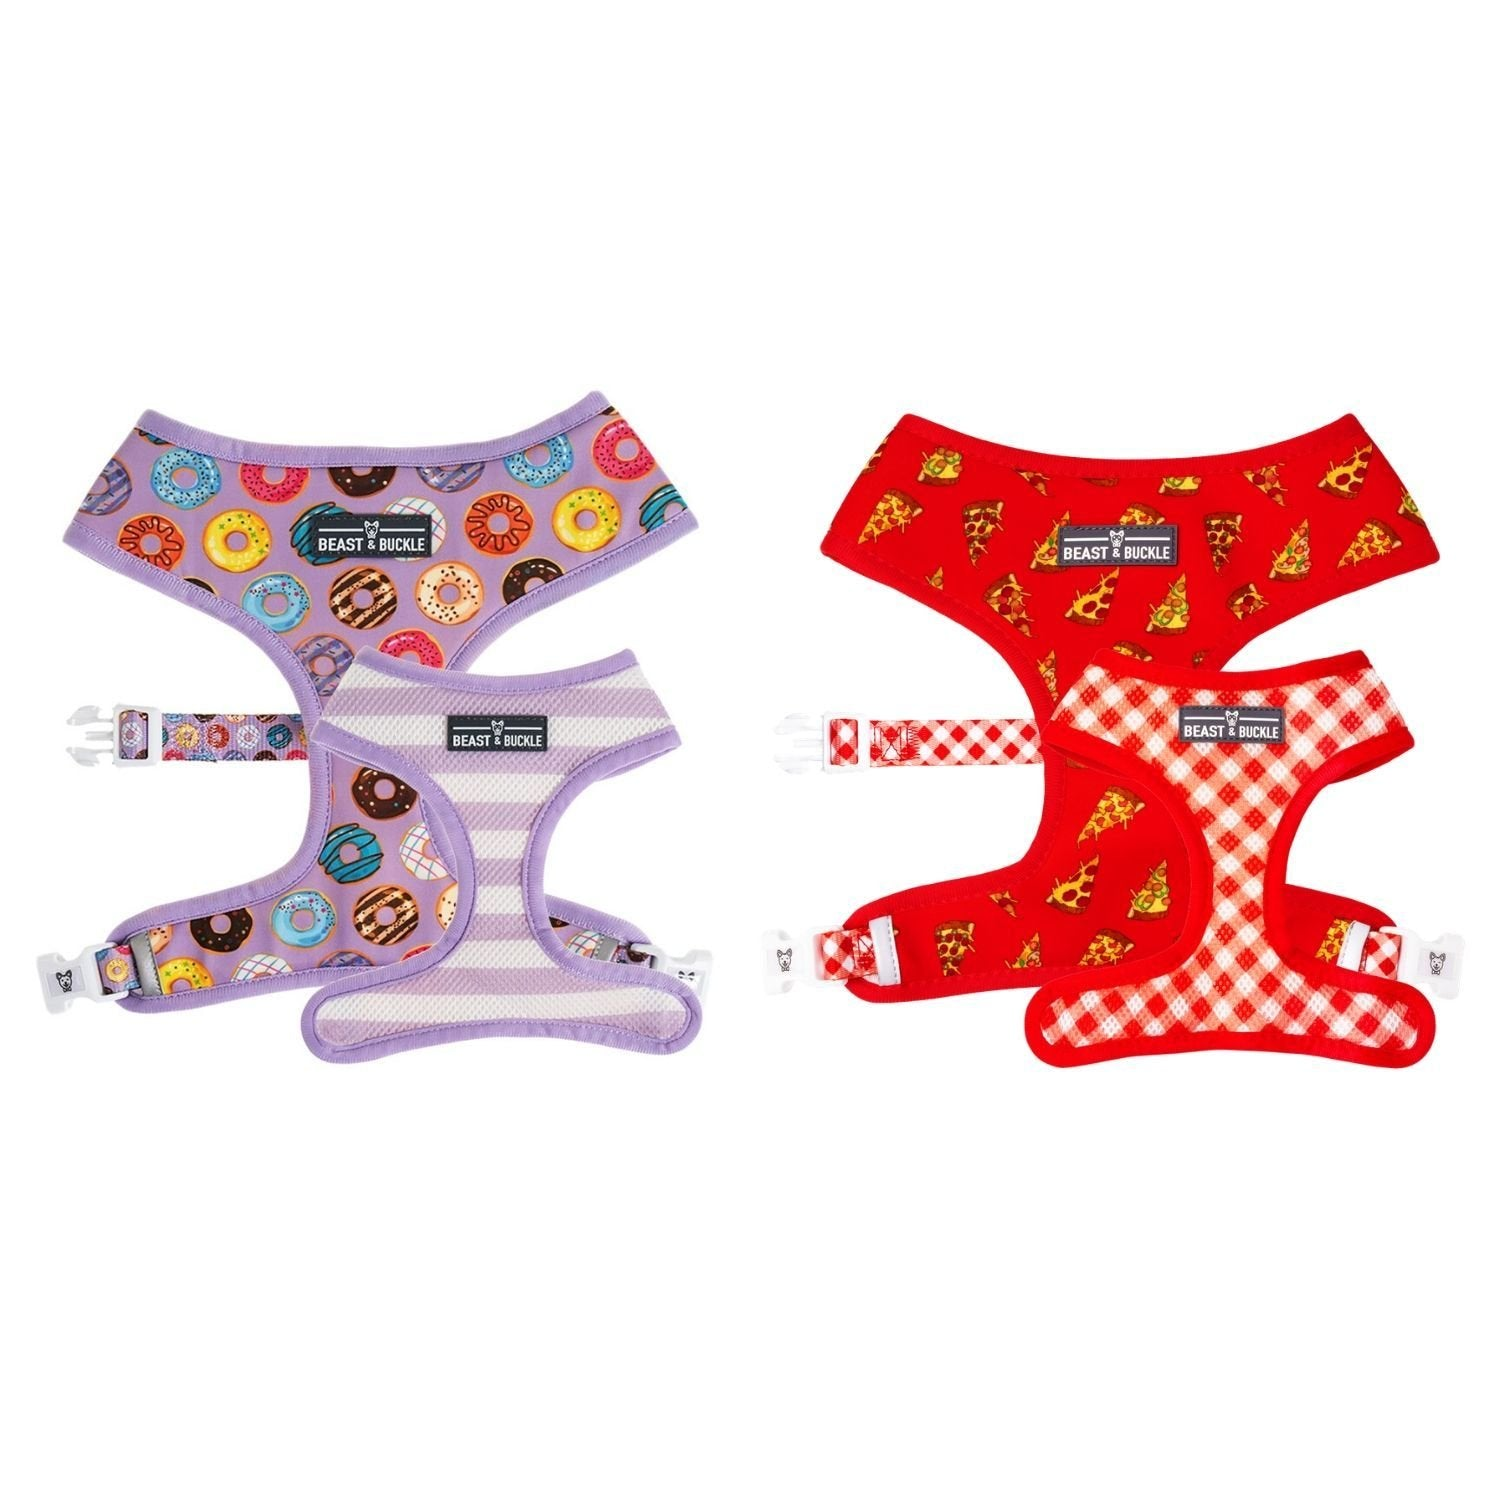 Tasty Treats Harness Gift Set - Beast & Buckle